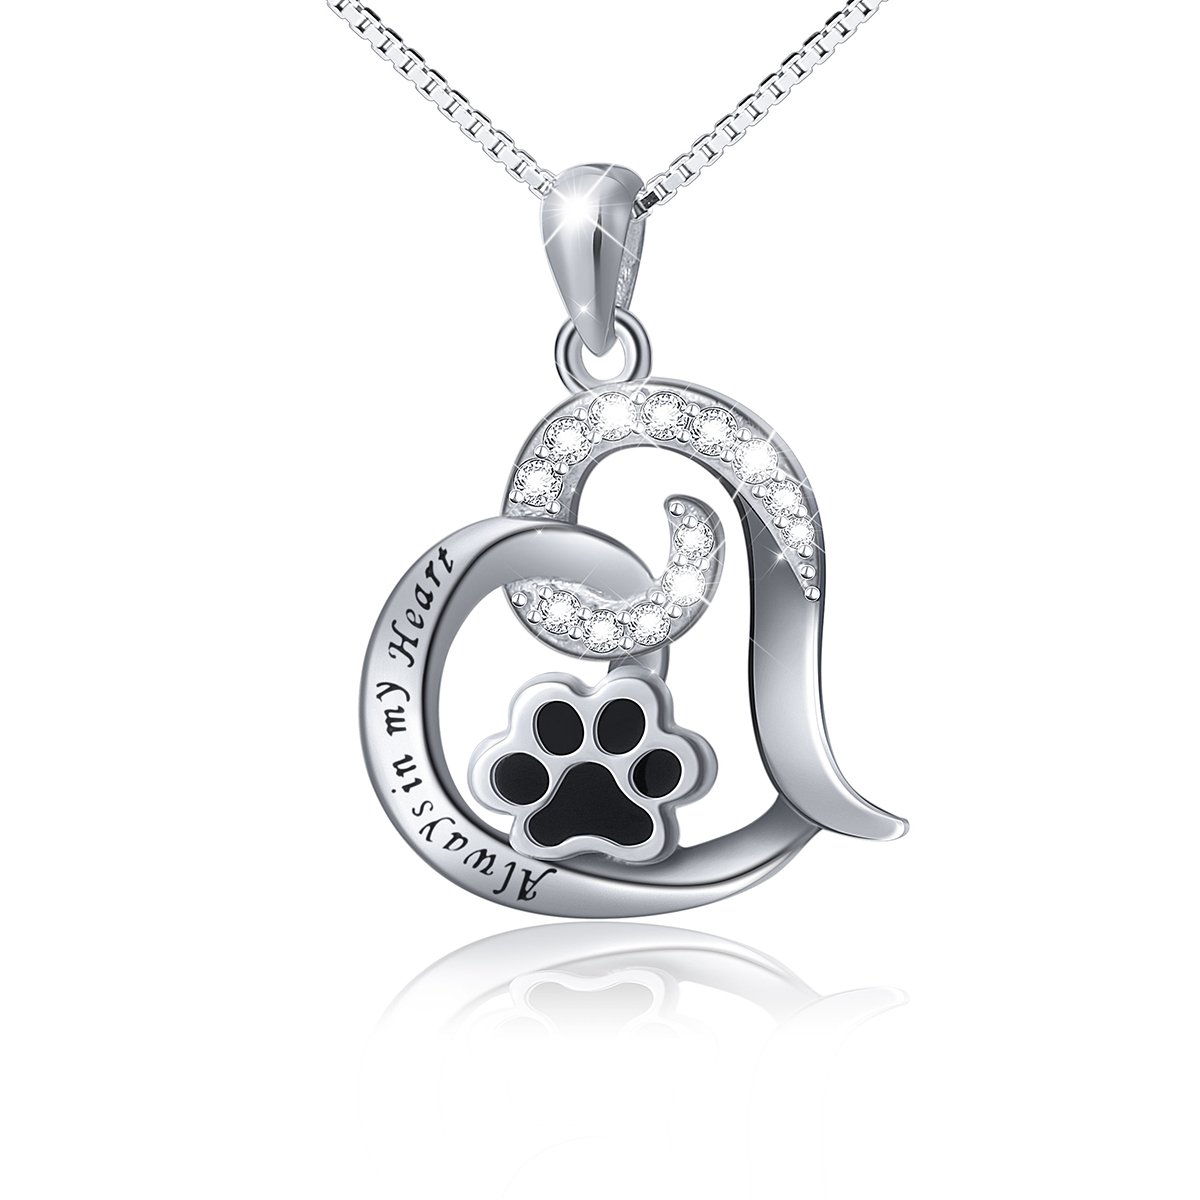 Paw Necklace 925 Sterling Silver Cute Puppy Paw Print Love Heart Pendant Necklace Gift for Women Girls, Box Chain 18'' (Engraved Always in My Heart)